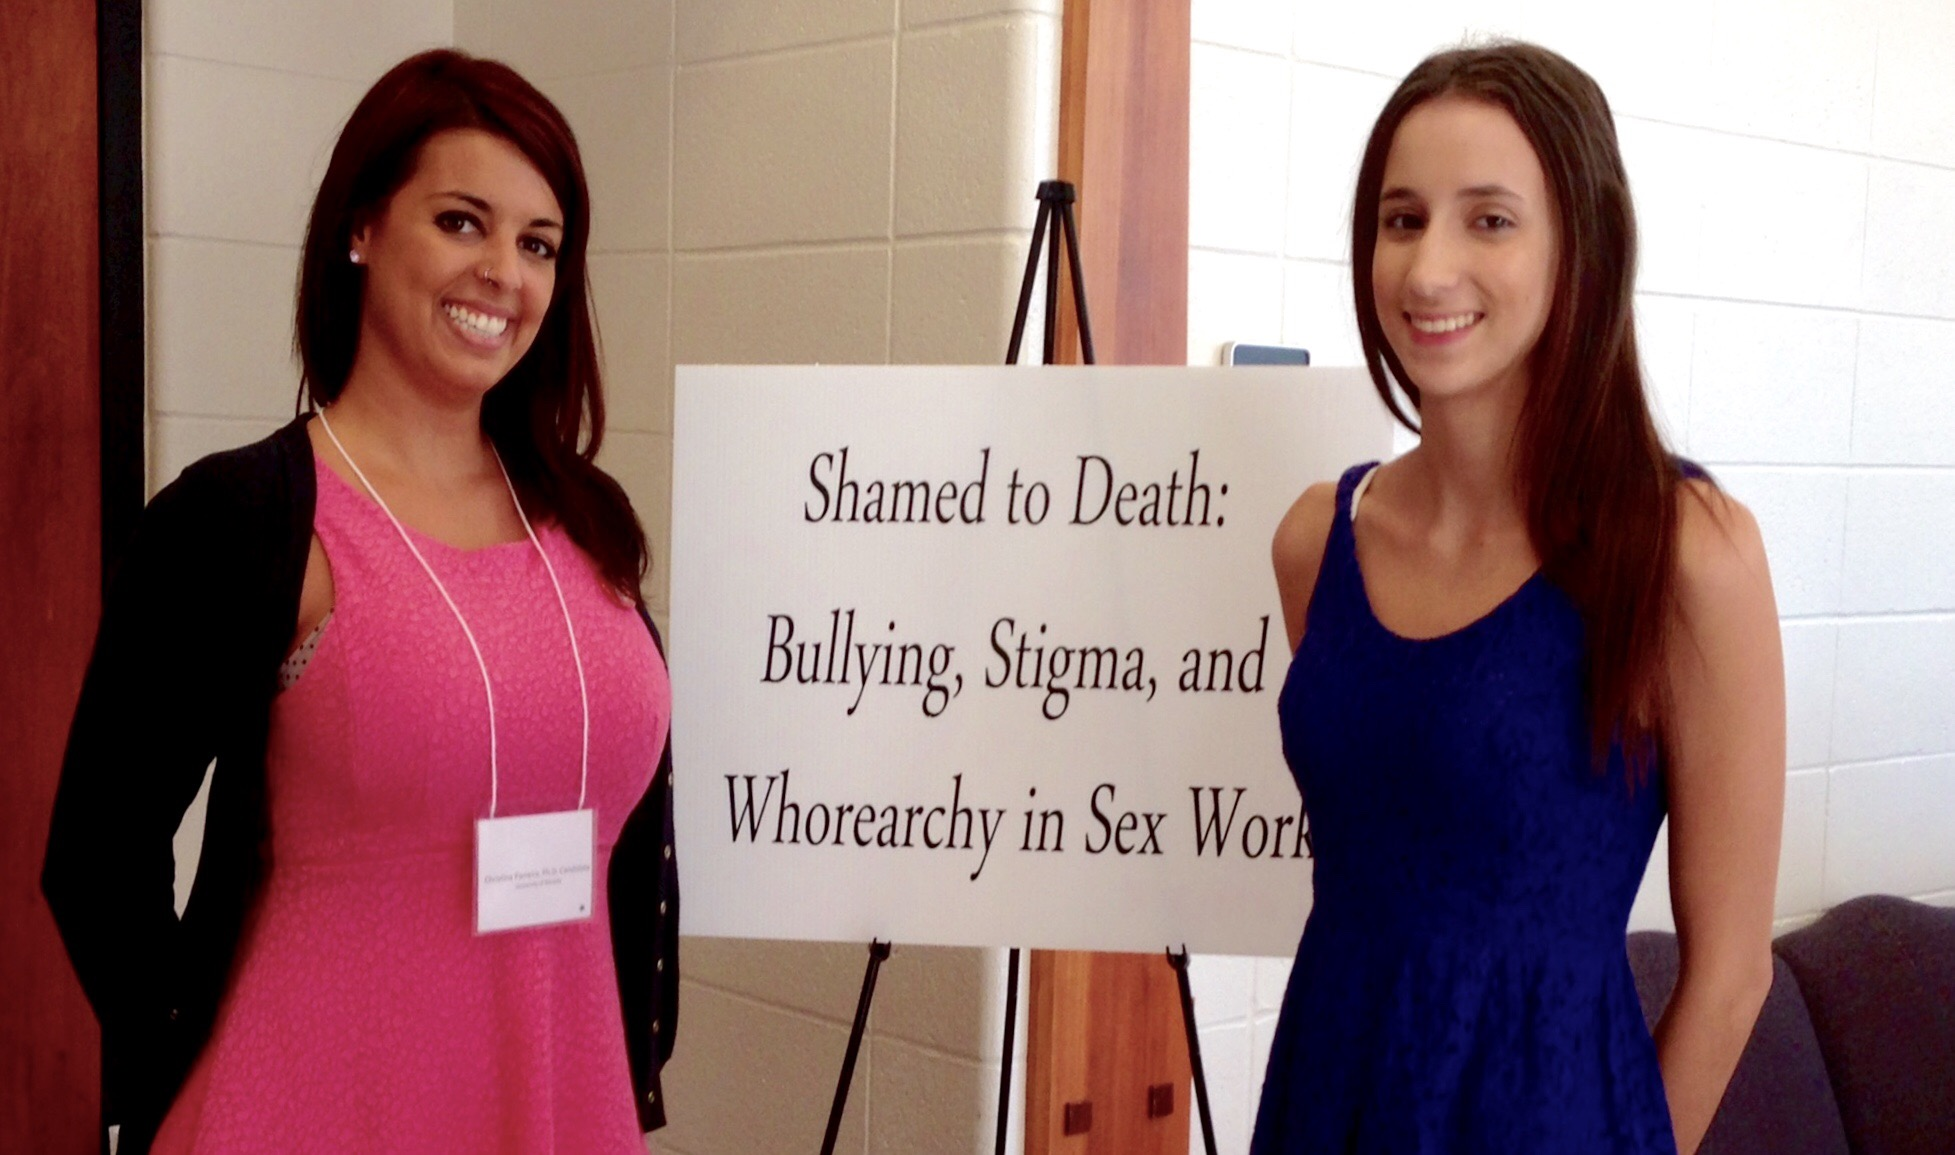 Belle Knox & Christina Parreira Present at Human Trafficking, Prostitution & Sex Work Conference in Toledo